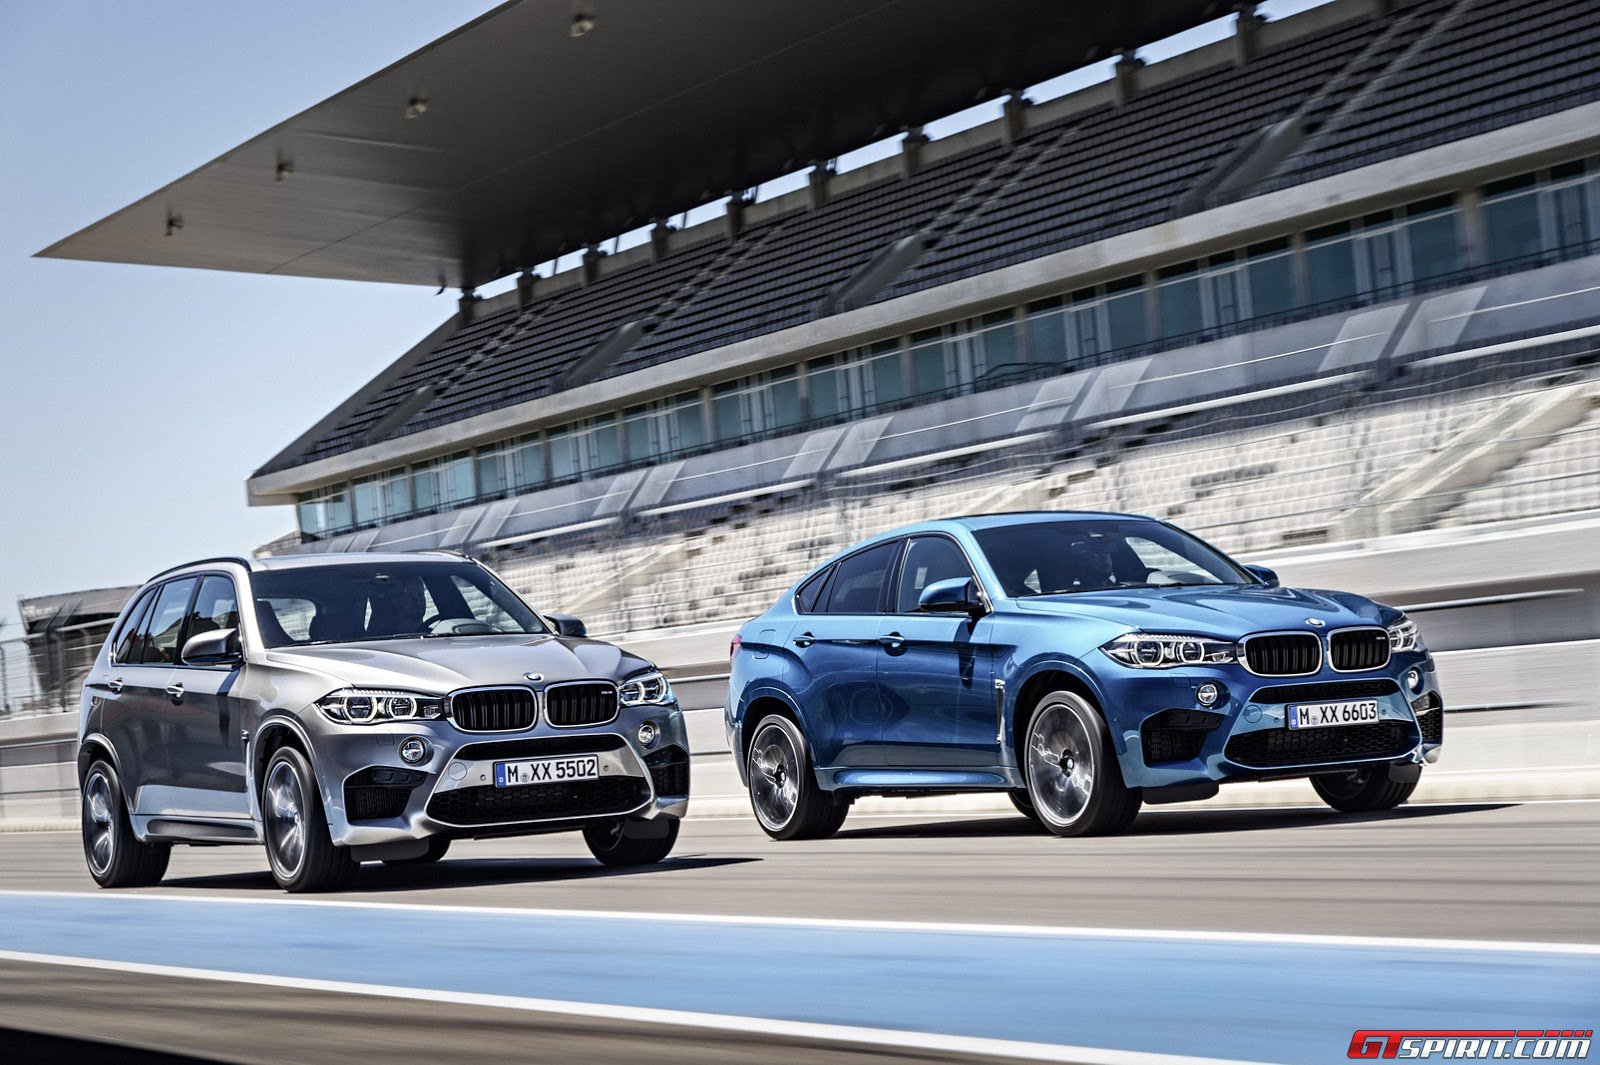 2015 bmw x5 m and x6 m ordering guide revealed gtspirit. Black Bedroom Furniture Sets. Home Design Ideas